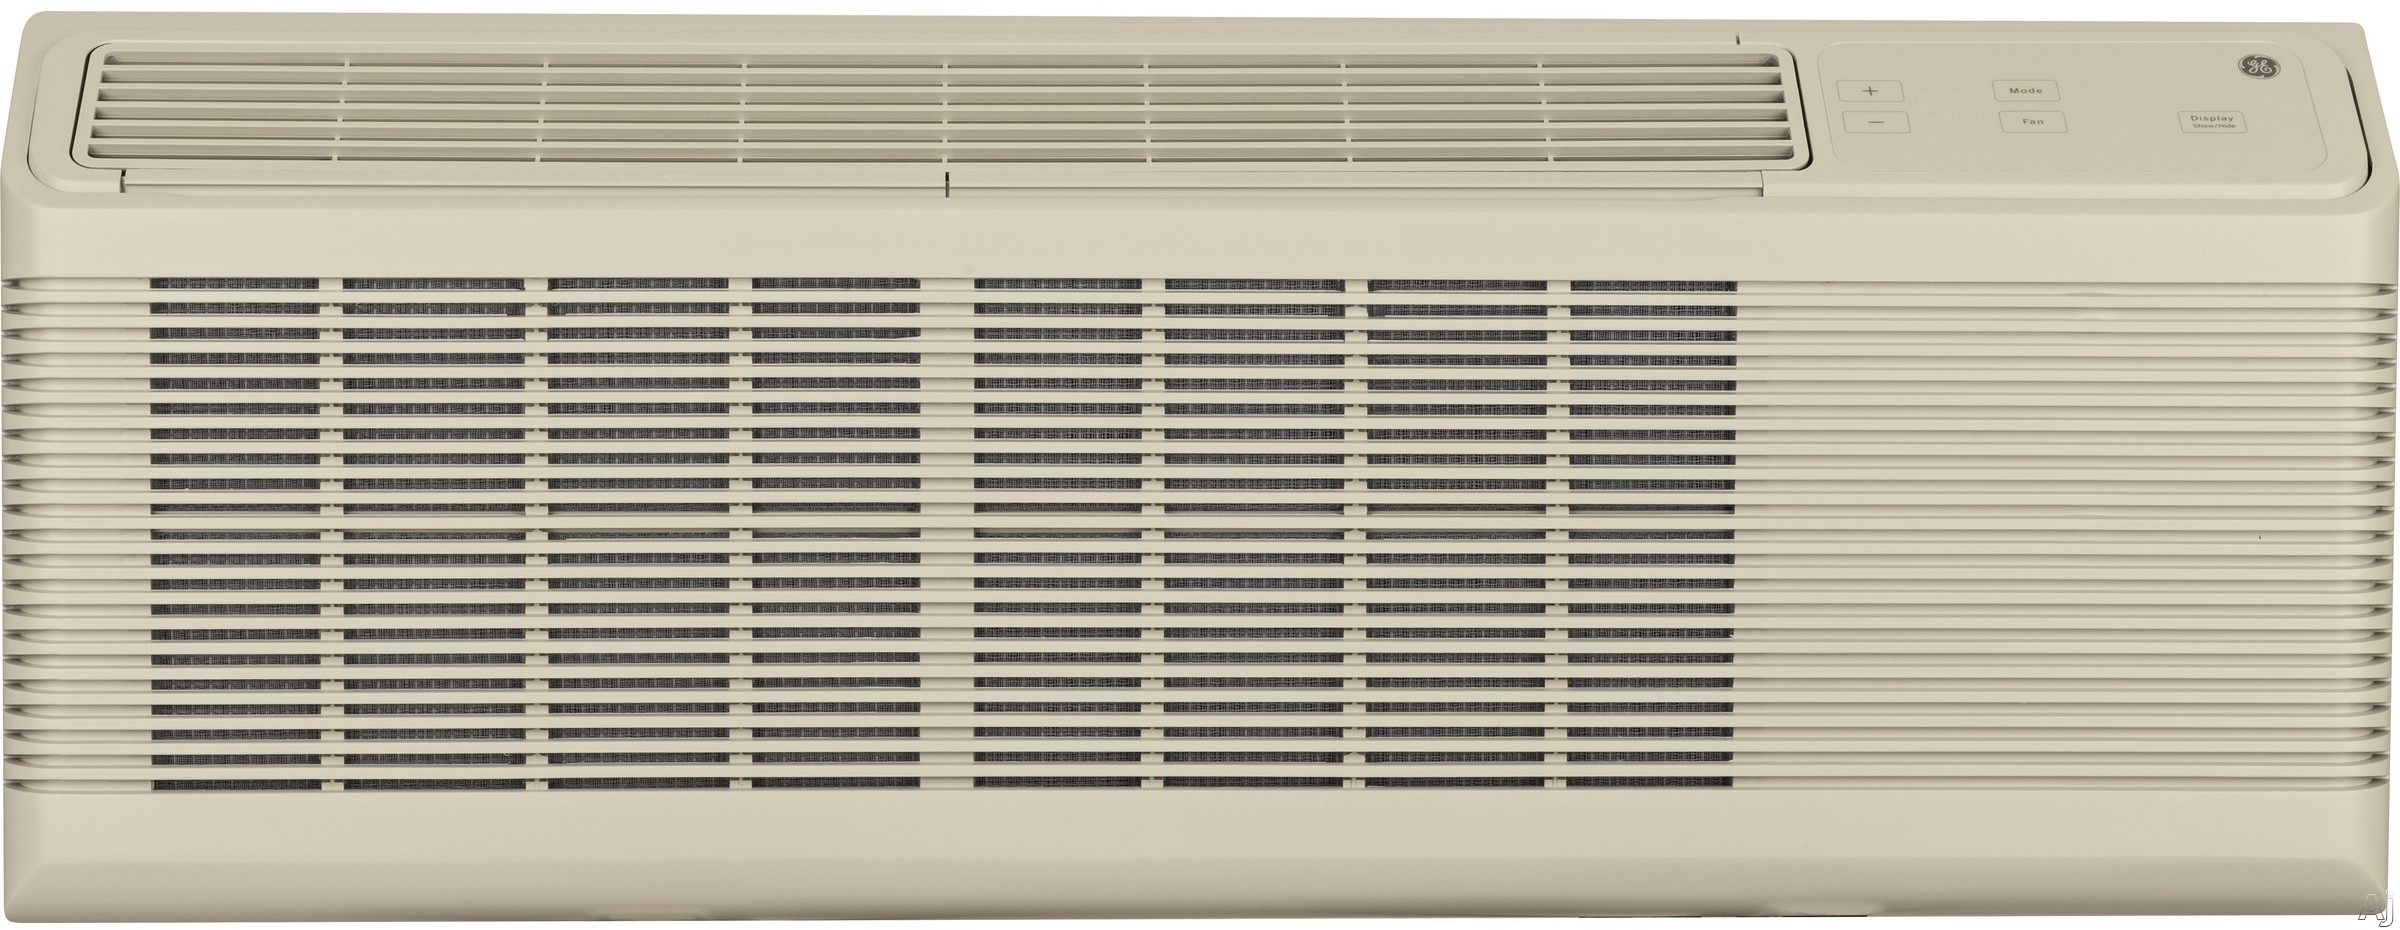 GE Zoneline AZ65H12EAC 11,900 BTU Packaged Terminal Air Conditioner with 10,500 BTU Heat Pump and Electric Heat Backup, Corrosion Protection, 11.6 EER, 3.7 Pints Per Hour Dehumidification, R410A Refrigerant and 265 Volt AZ65H12EAC